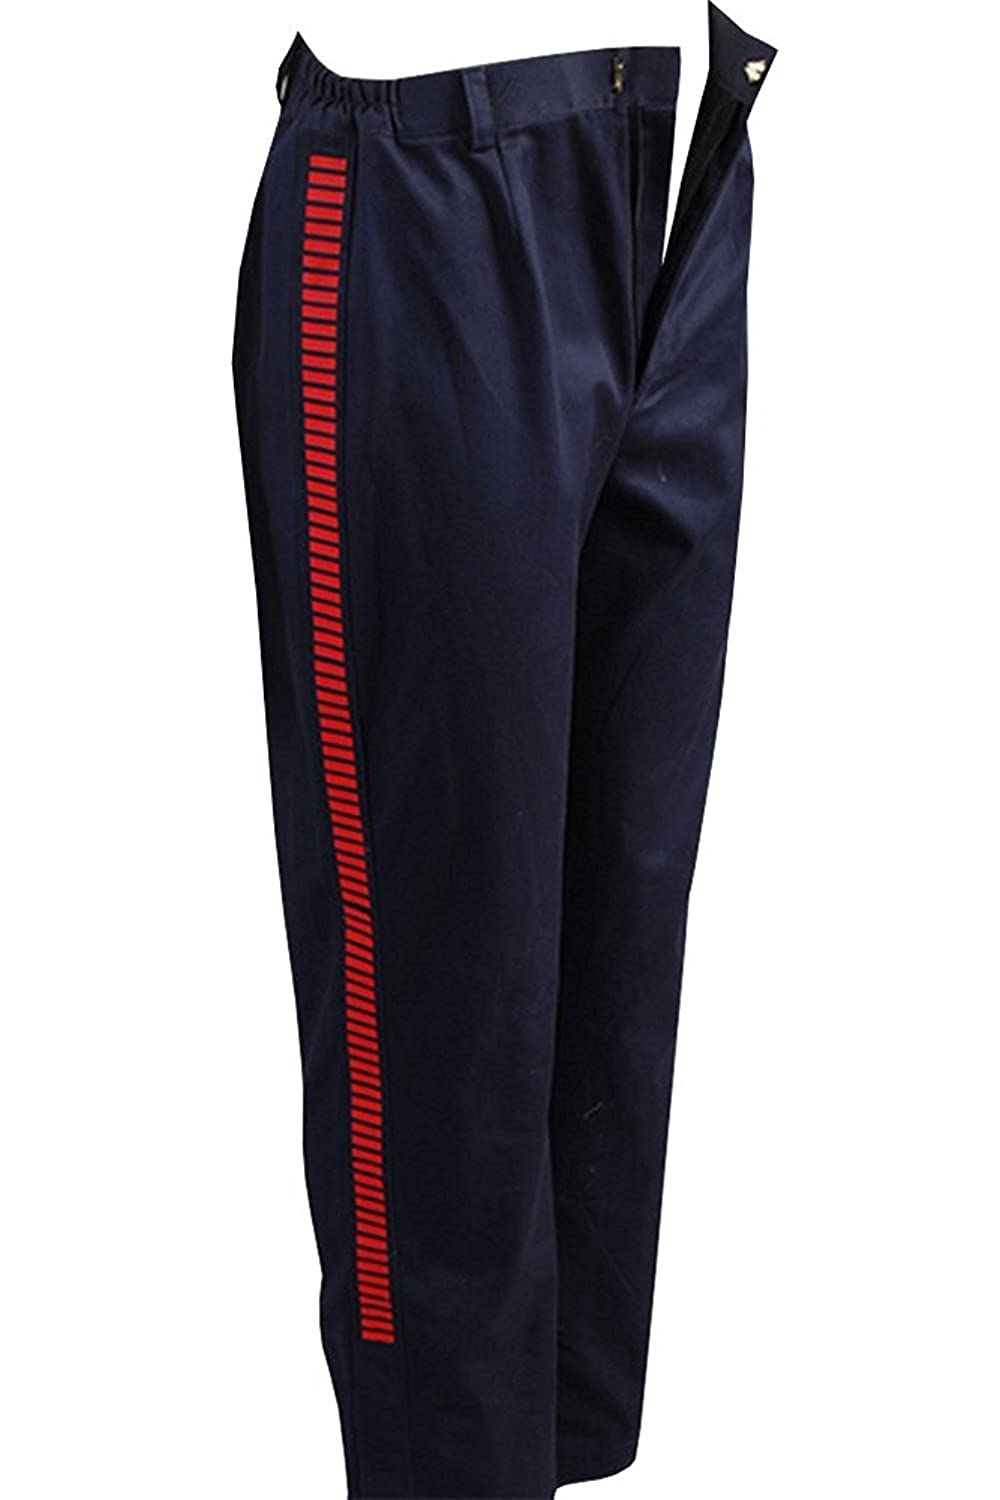 Han Solo Pants Navy Blue Red Straps Deluxe Pants Halloween Cosplay Costume